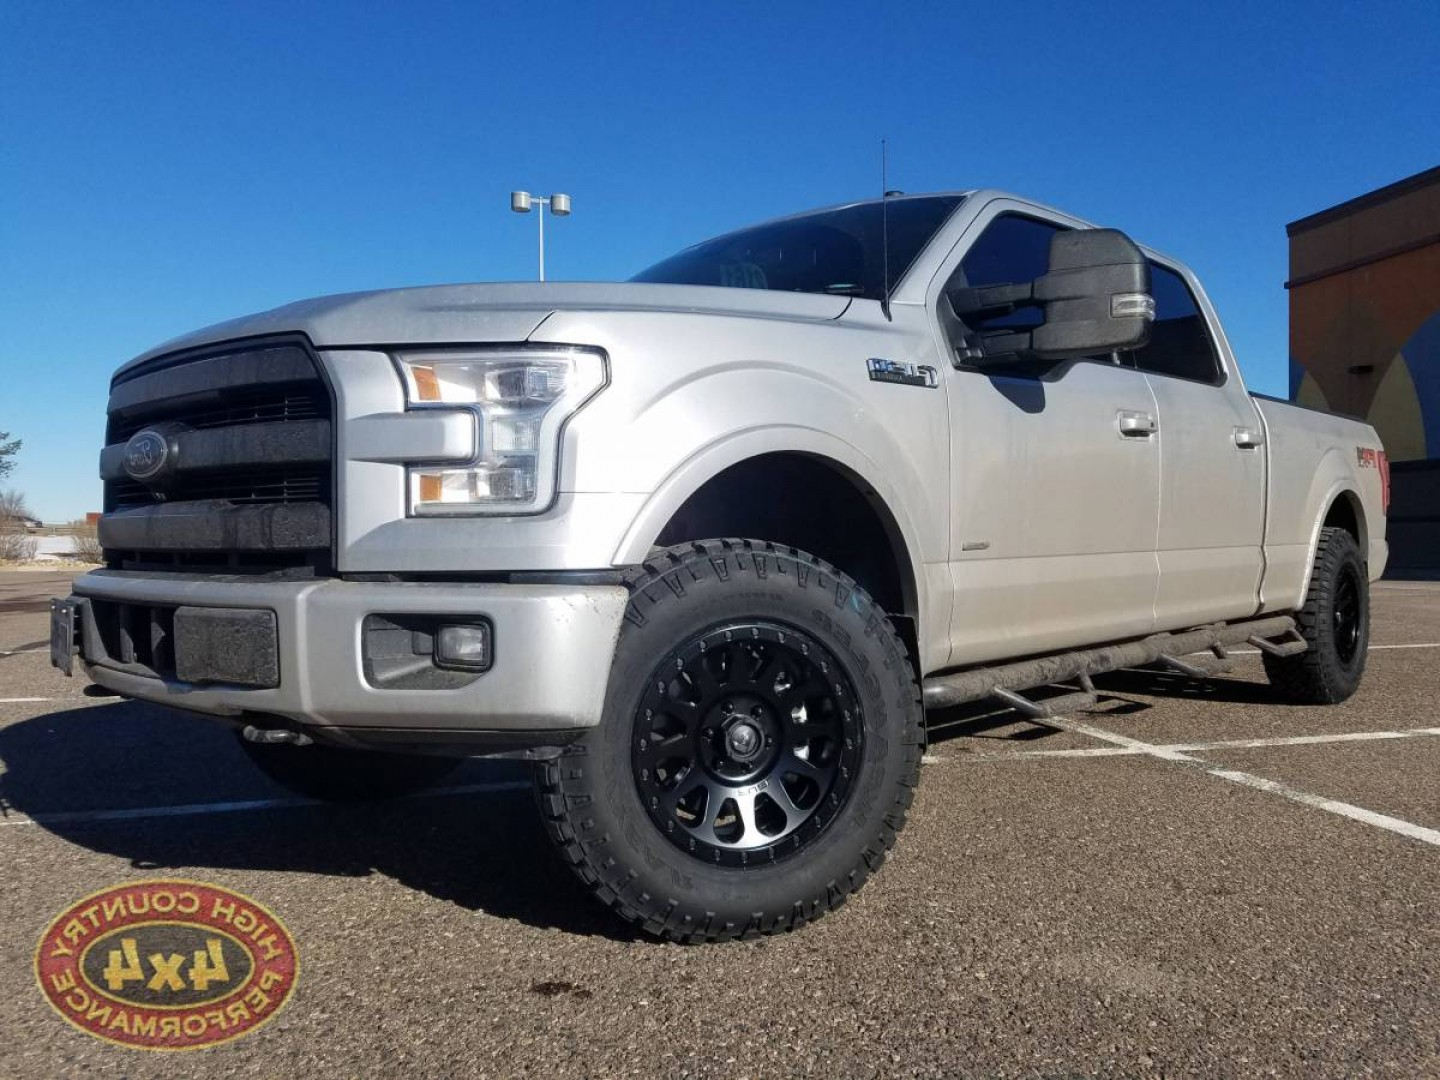 F150 Vector: I Ford F Readylift Leveling Kit Fuel Vector X Wheels R Duratrac Tires Build